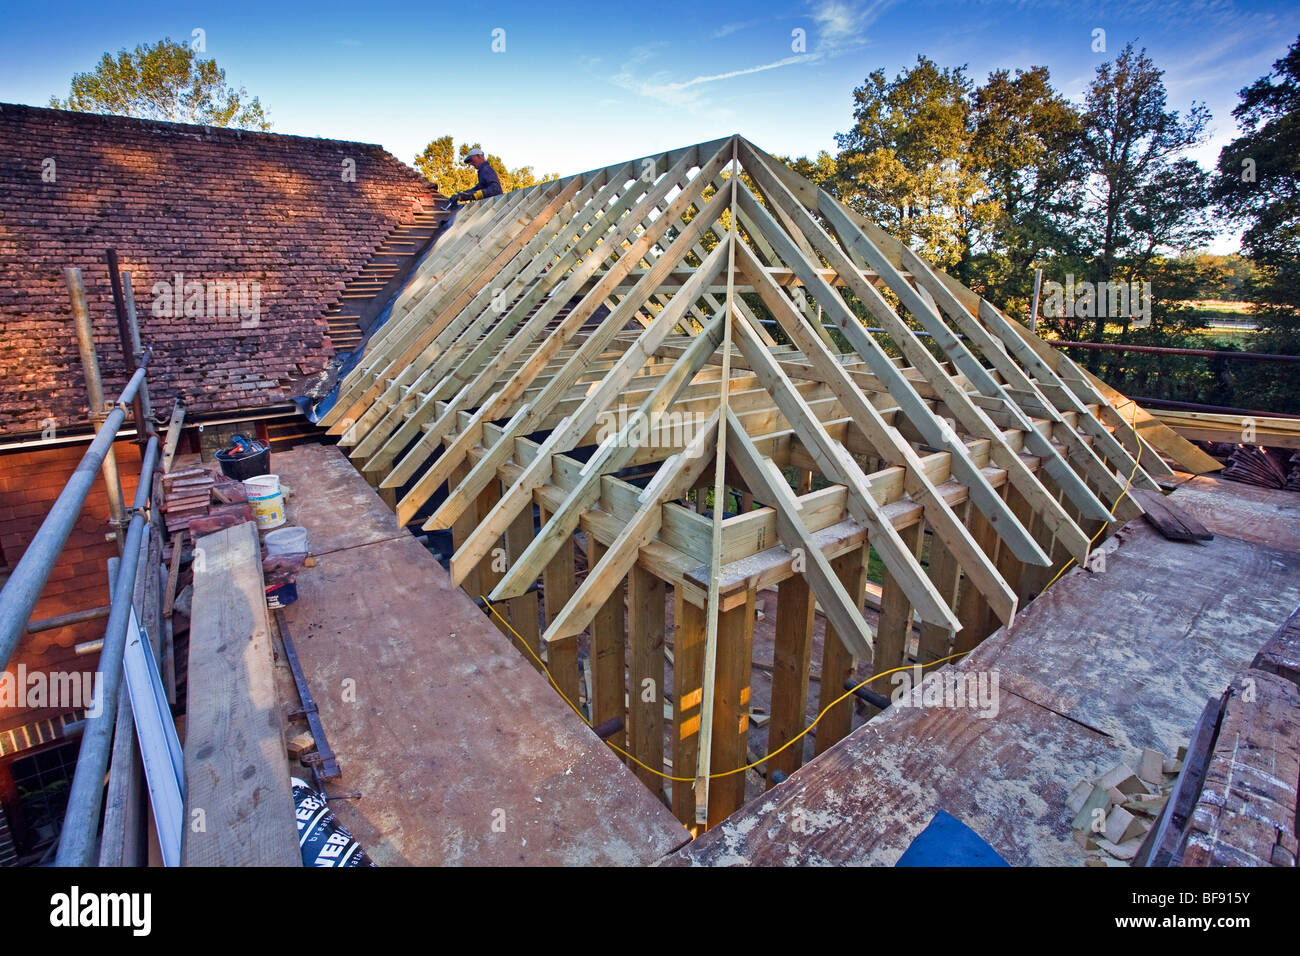 New Roof Construction Built For A House Extension In Sussex, England, UK  2009